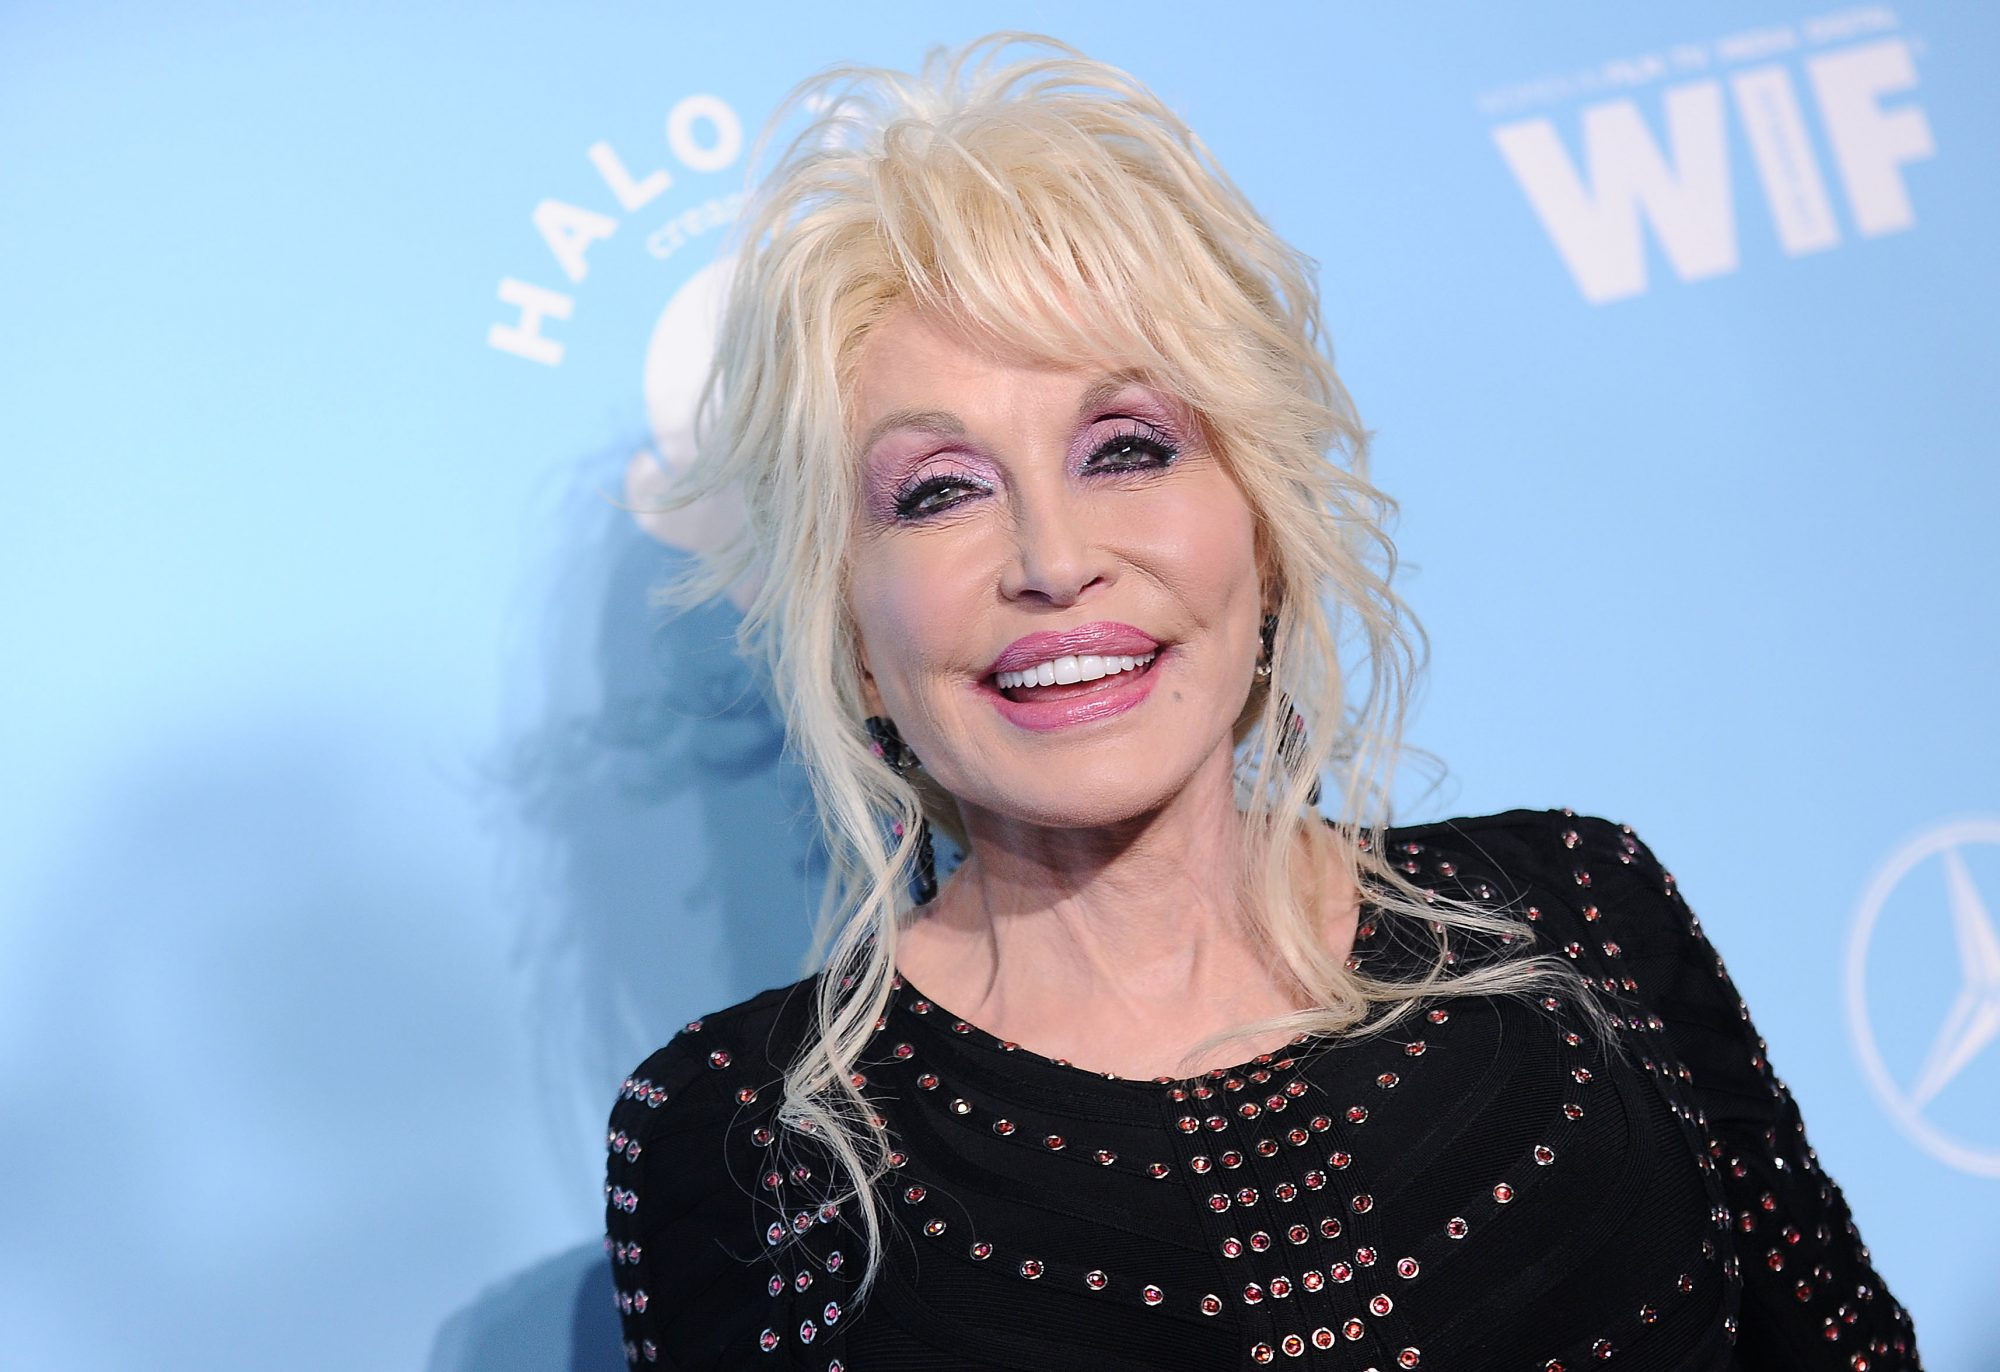 Dolly Parton: Dolly Parton's Veruca Salt Halloween Costume Is Dead On